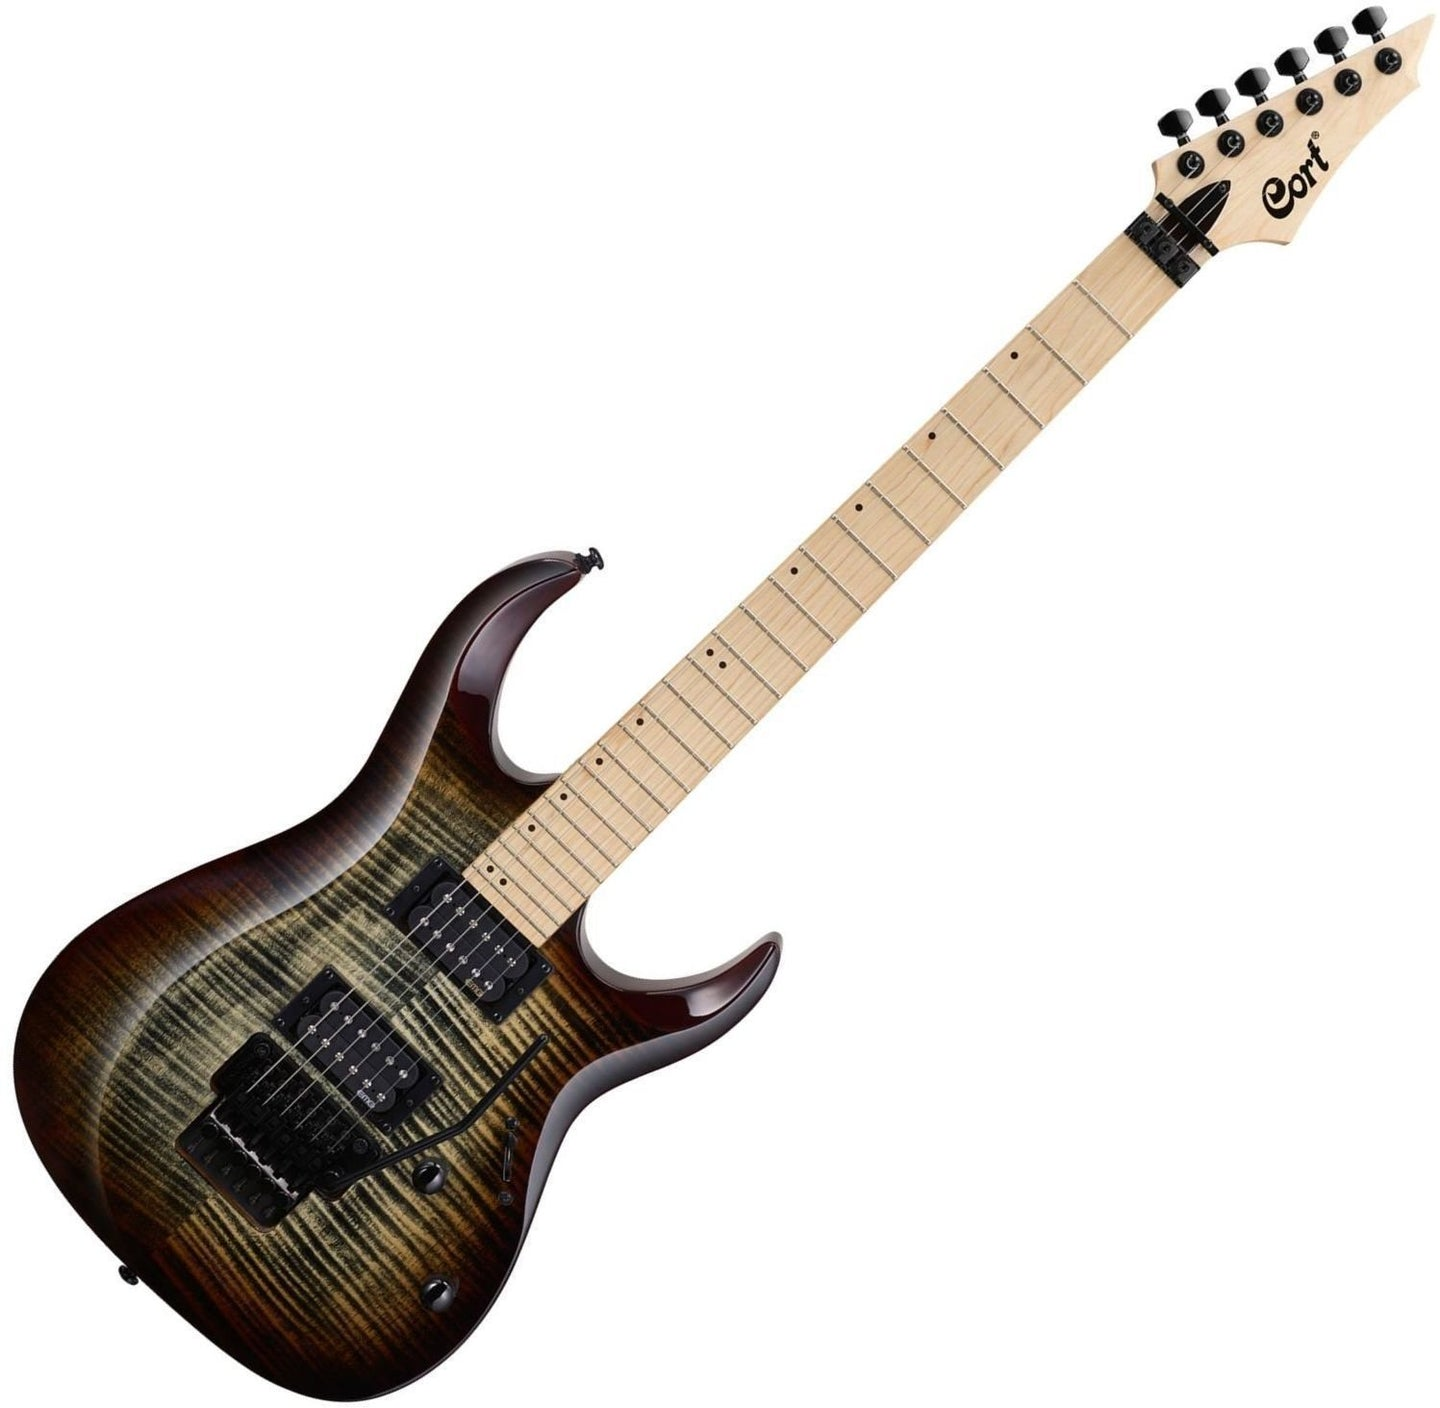 CORT guitare Electrique X300 BROWN BURST X300 BRB